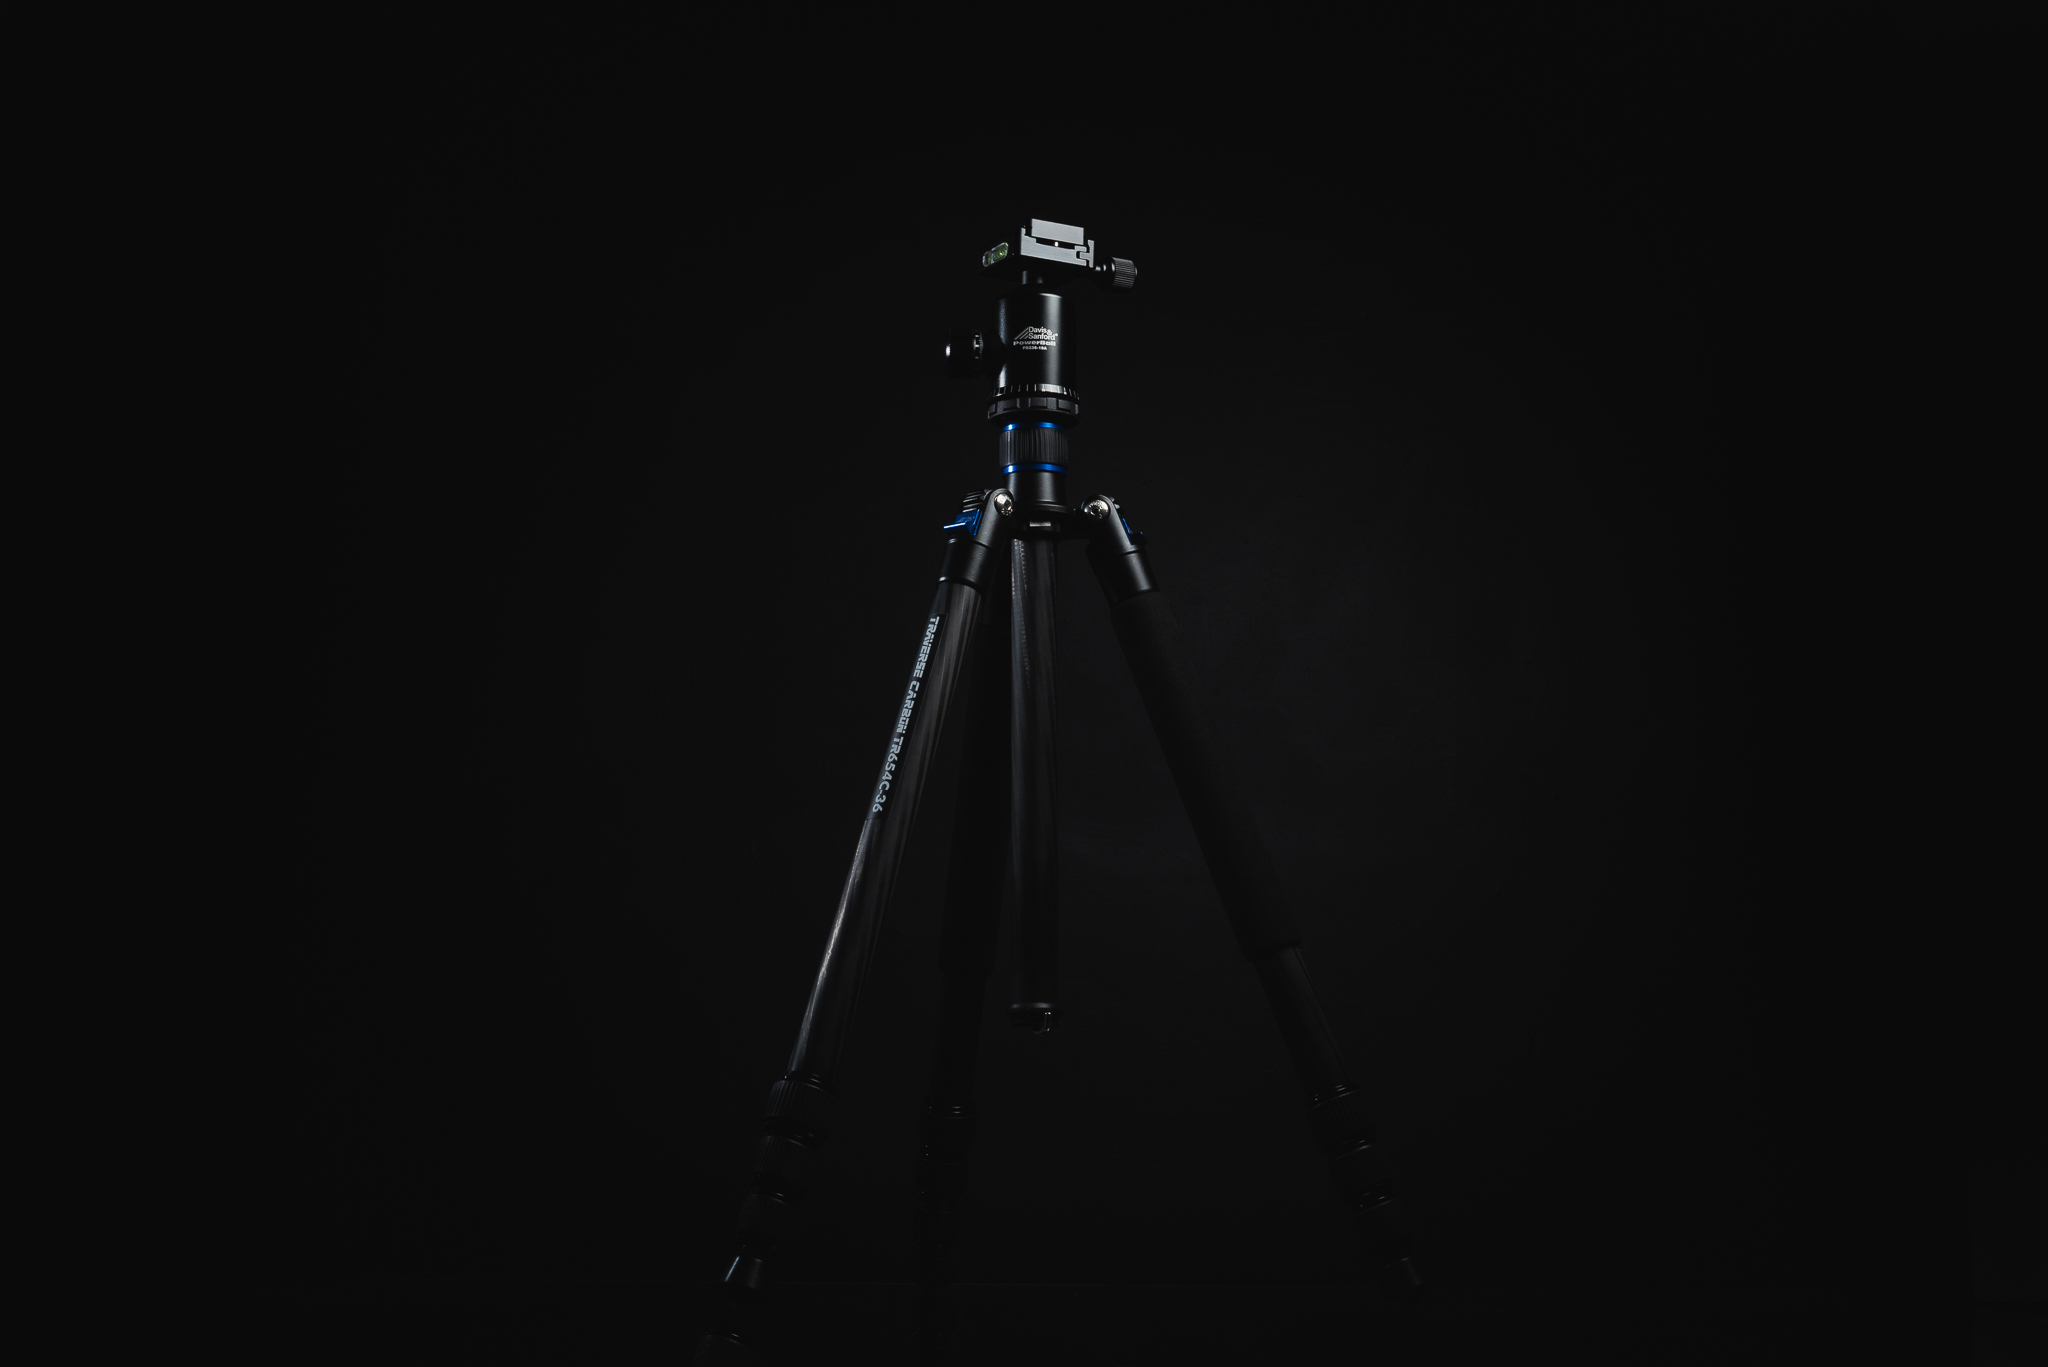 dusty-wooddell-product-photography-tripod.jpg